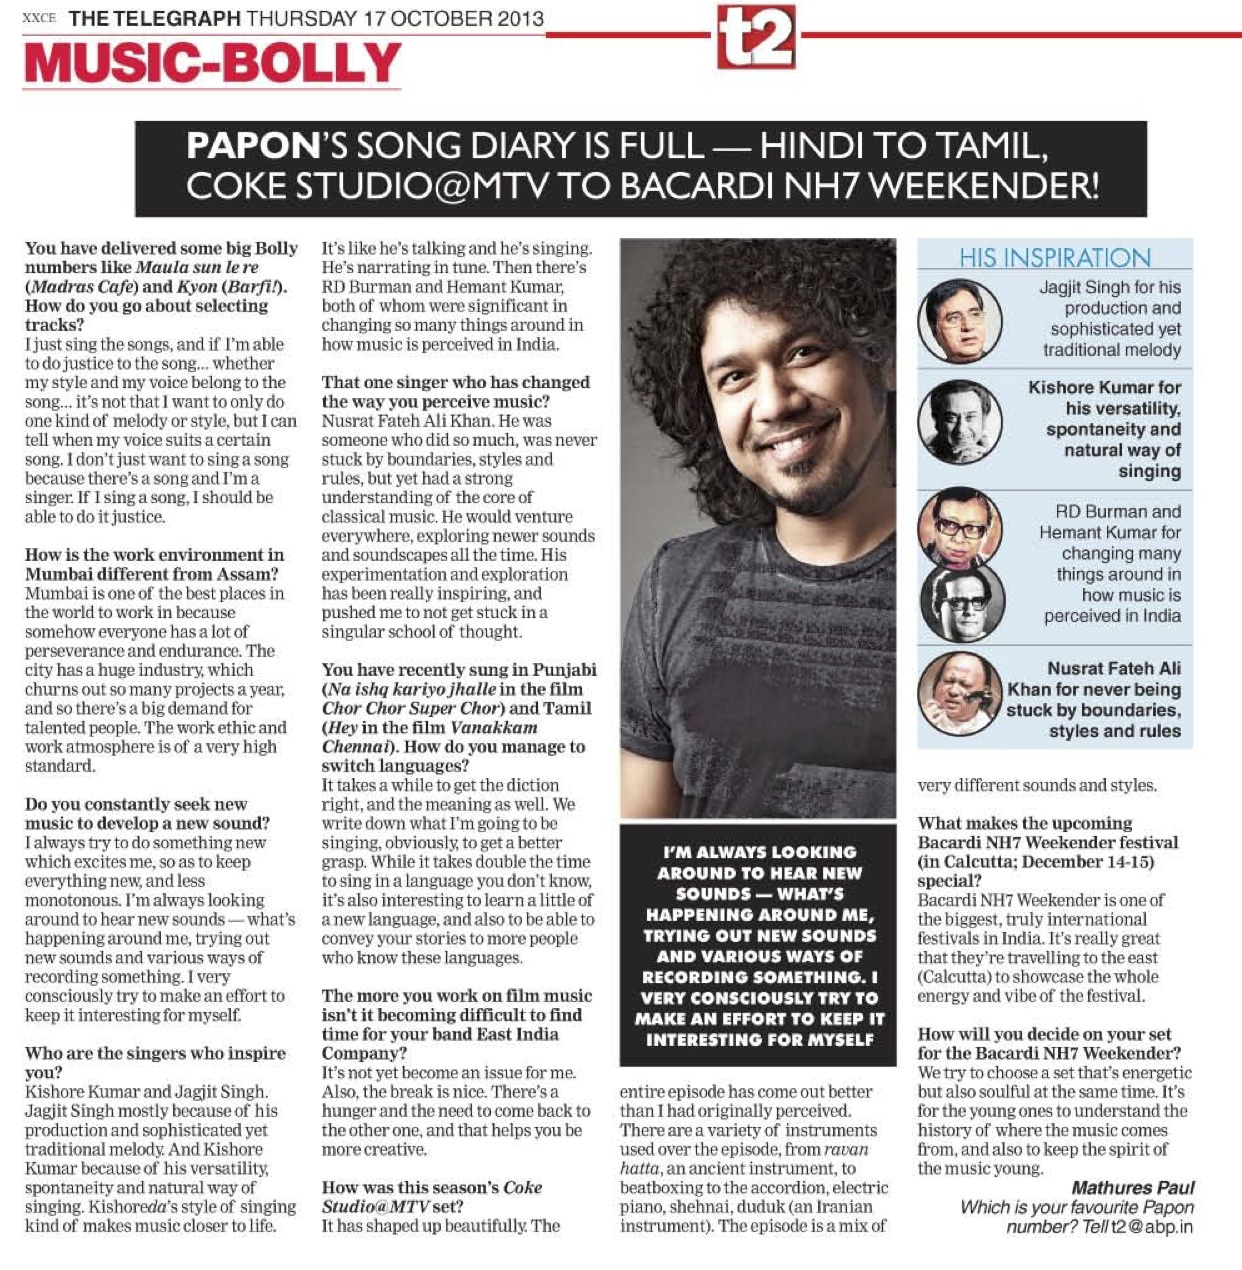 Papon - Telegraph, Kolkata - 17 October 2013